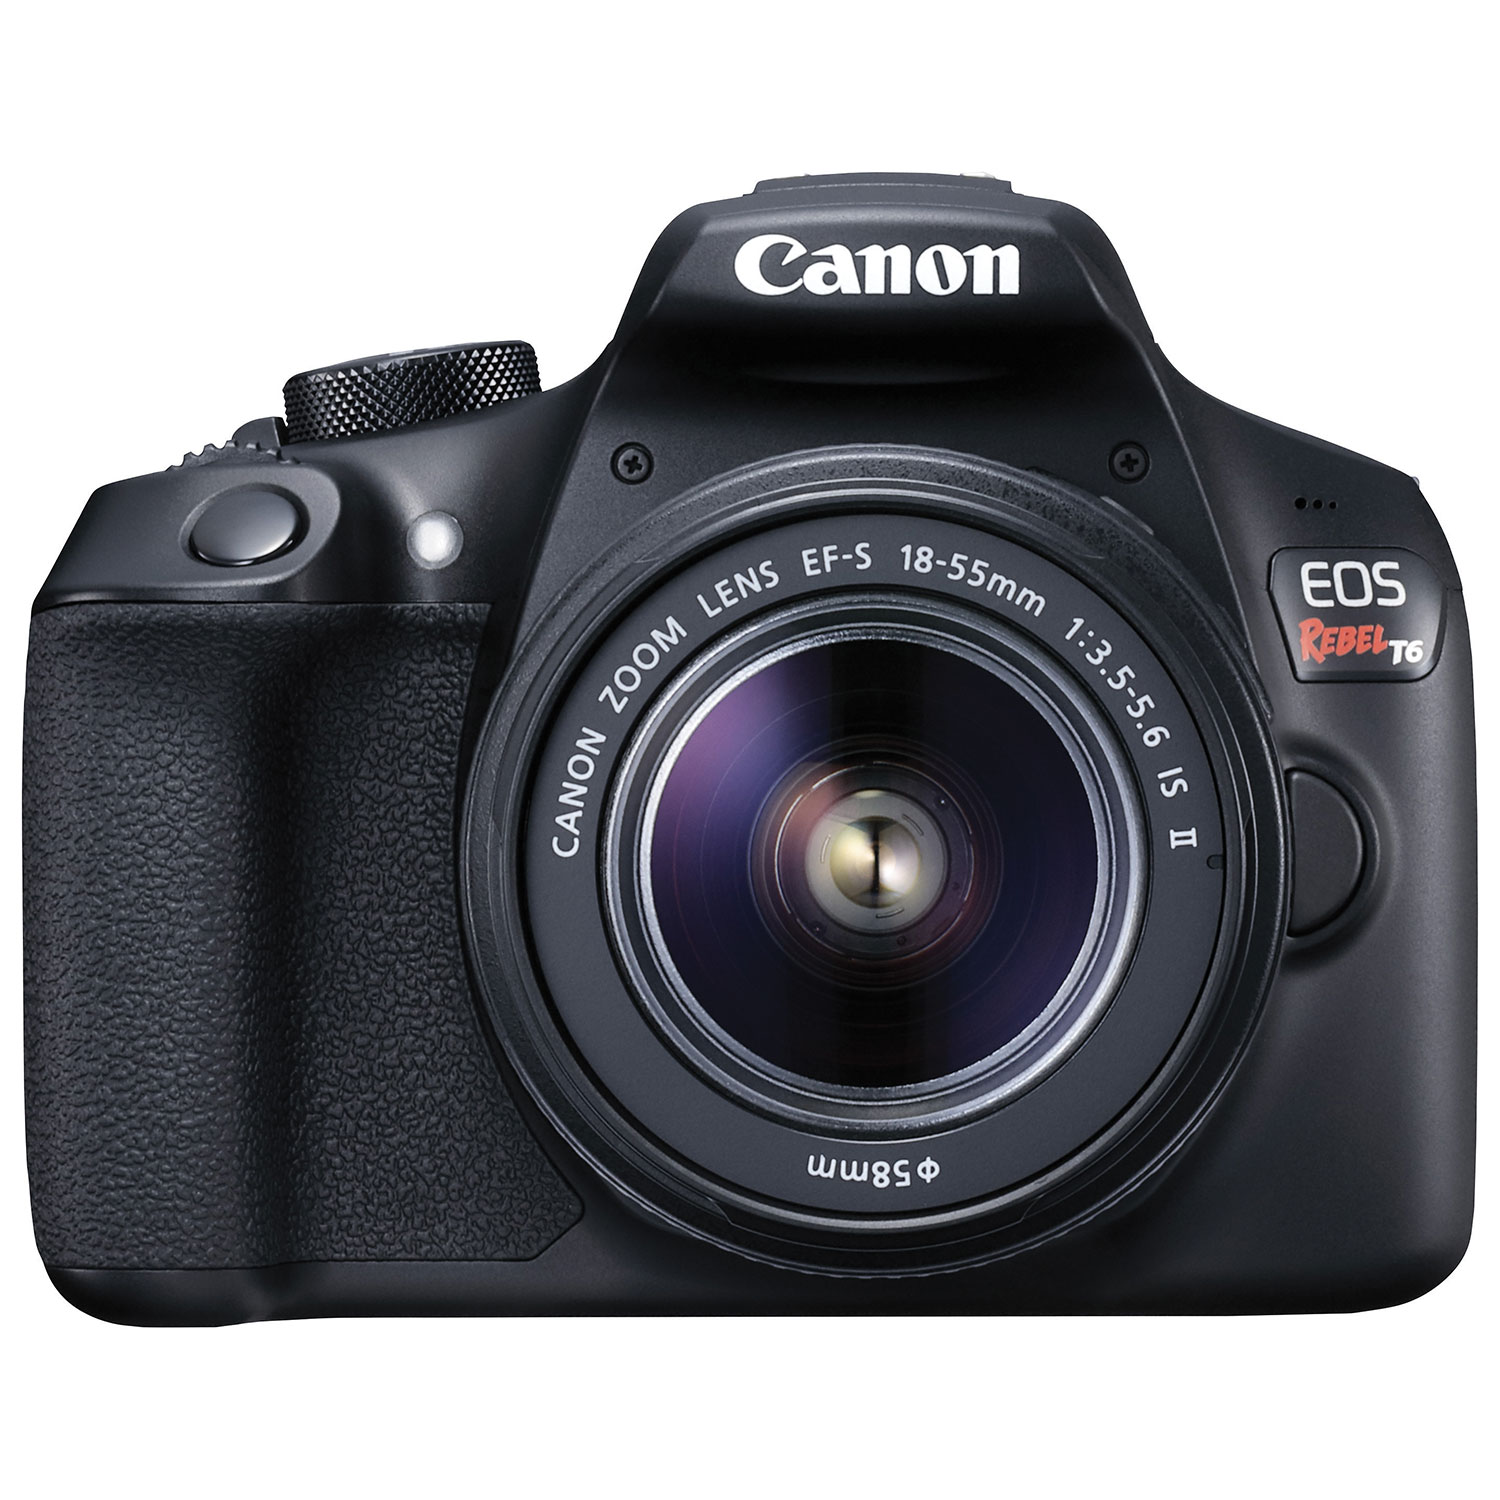 Camera Cheap Dslr Cameras Canada best digital slr cameras canon nikon dslr buy canada eos rebel t6 camera with ef s 18 55mm f3 5